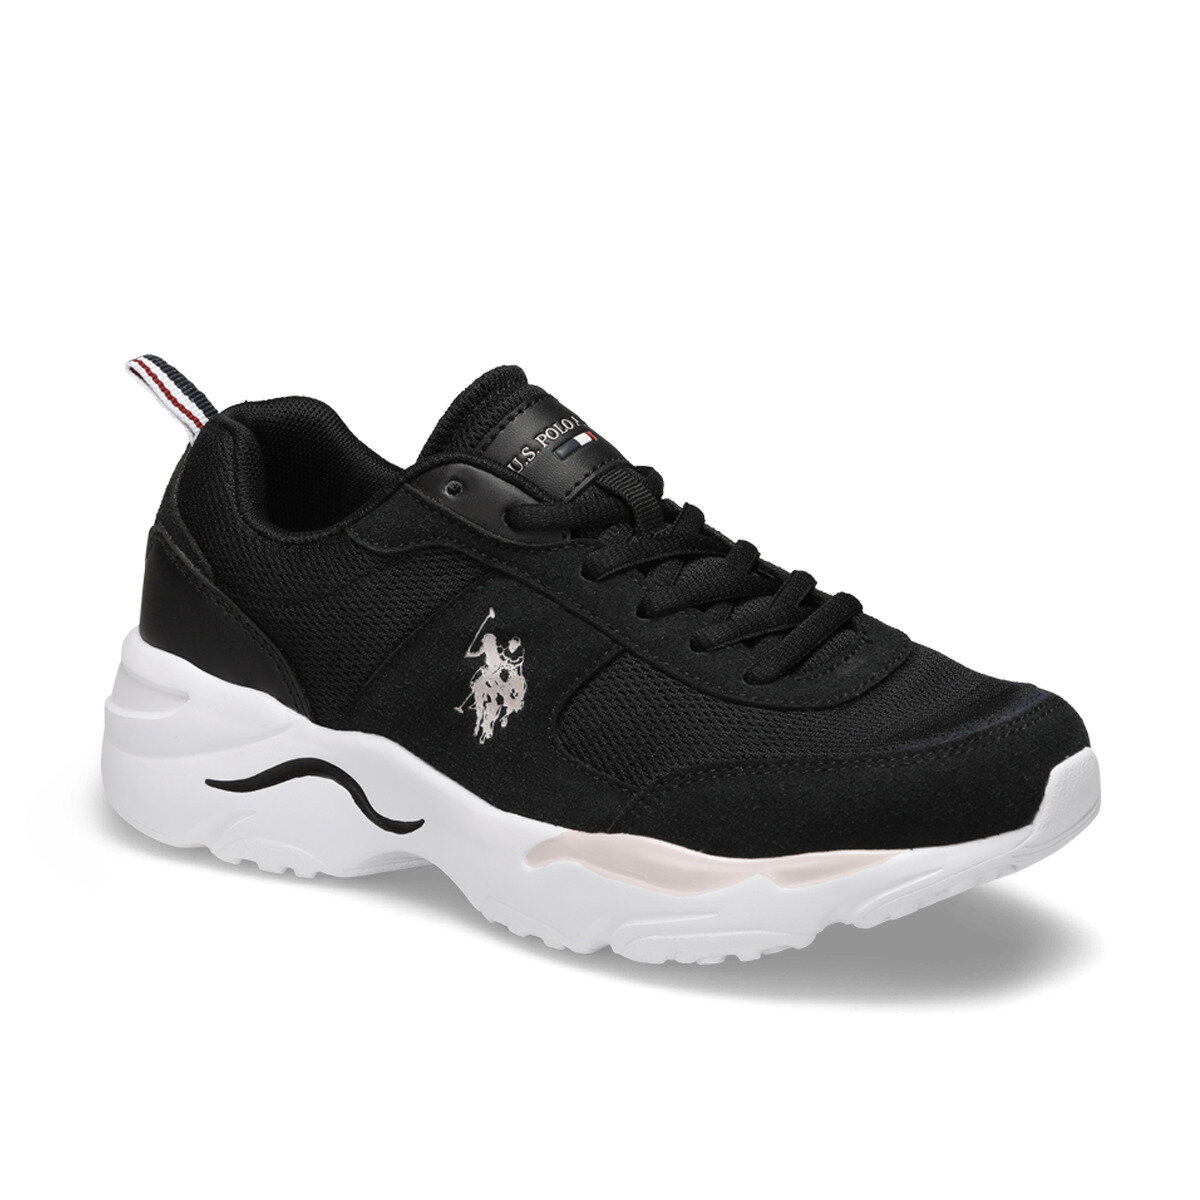 FLO TONY White Women 'S Sneaker Shoes U.S. POLO ASSN.